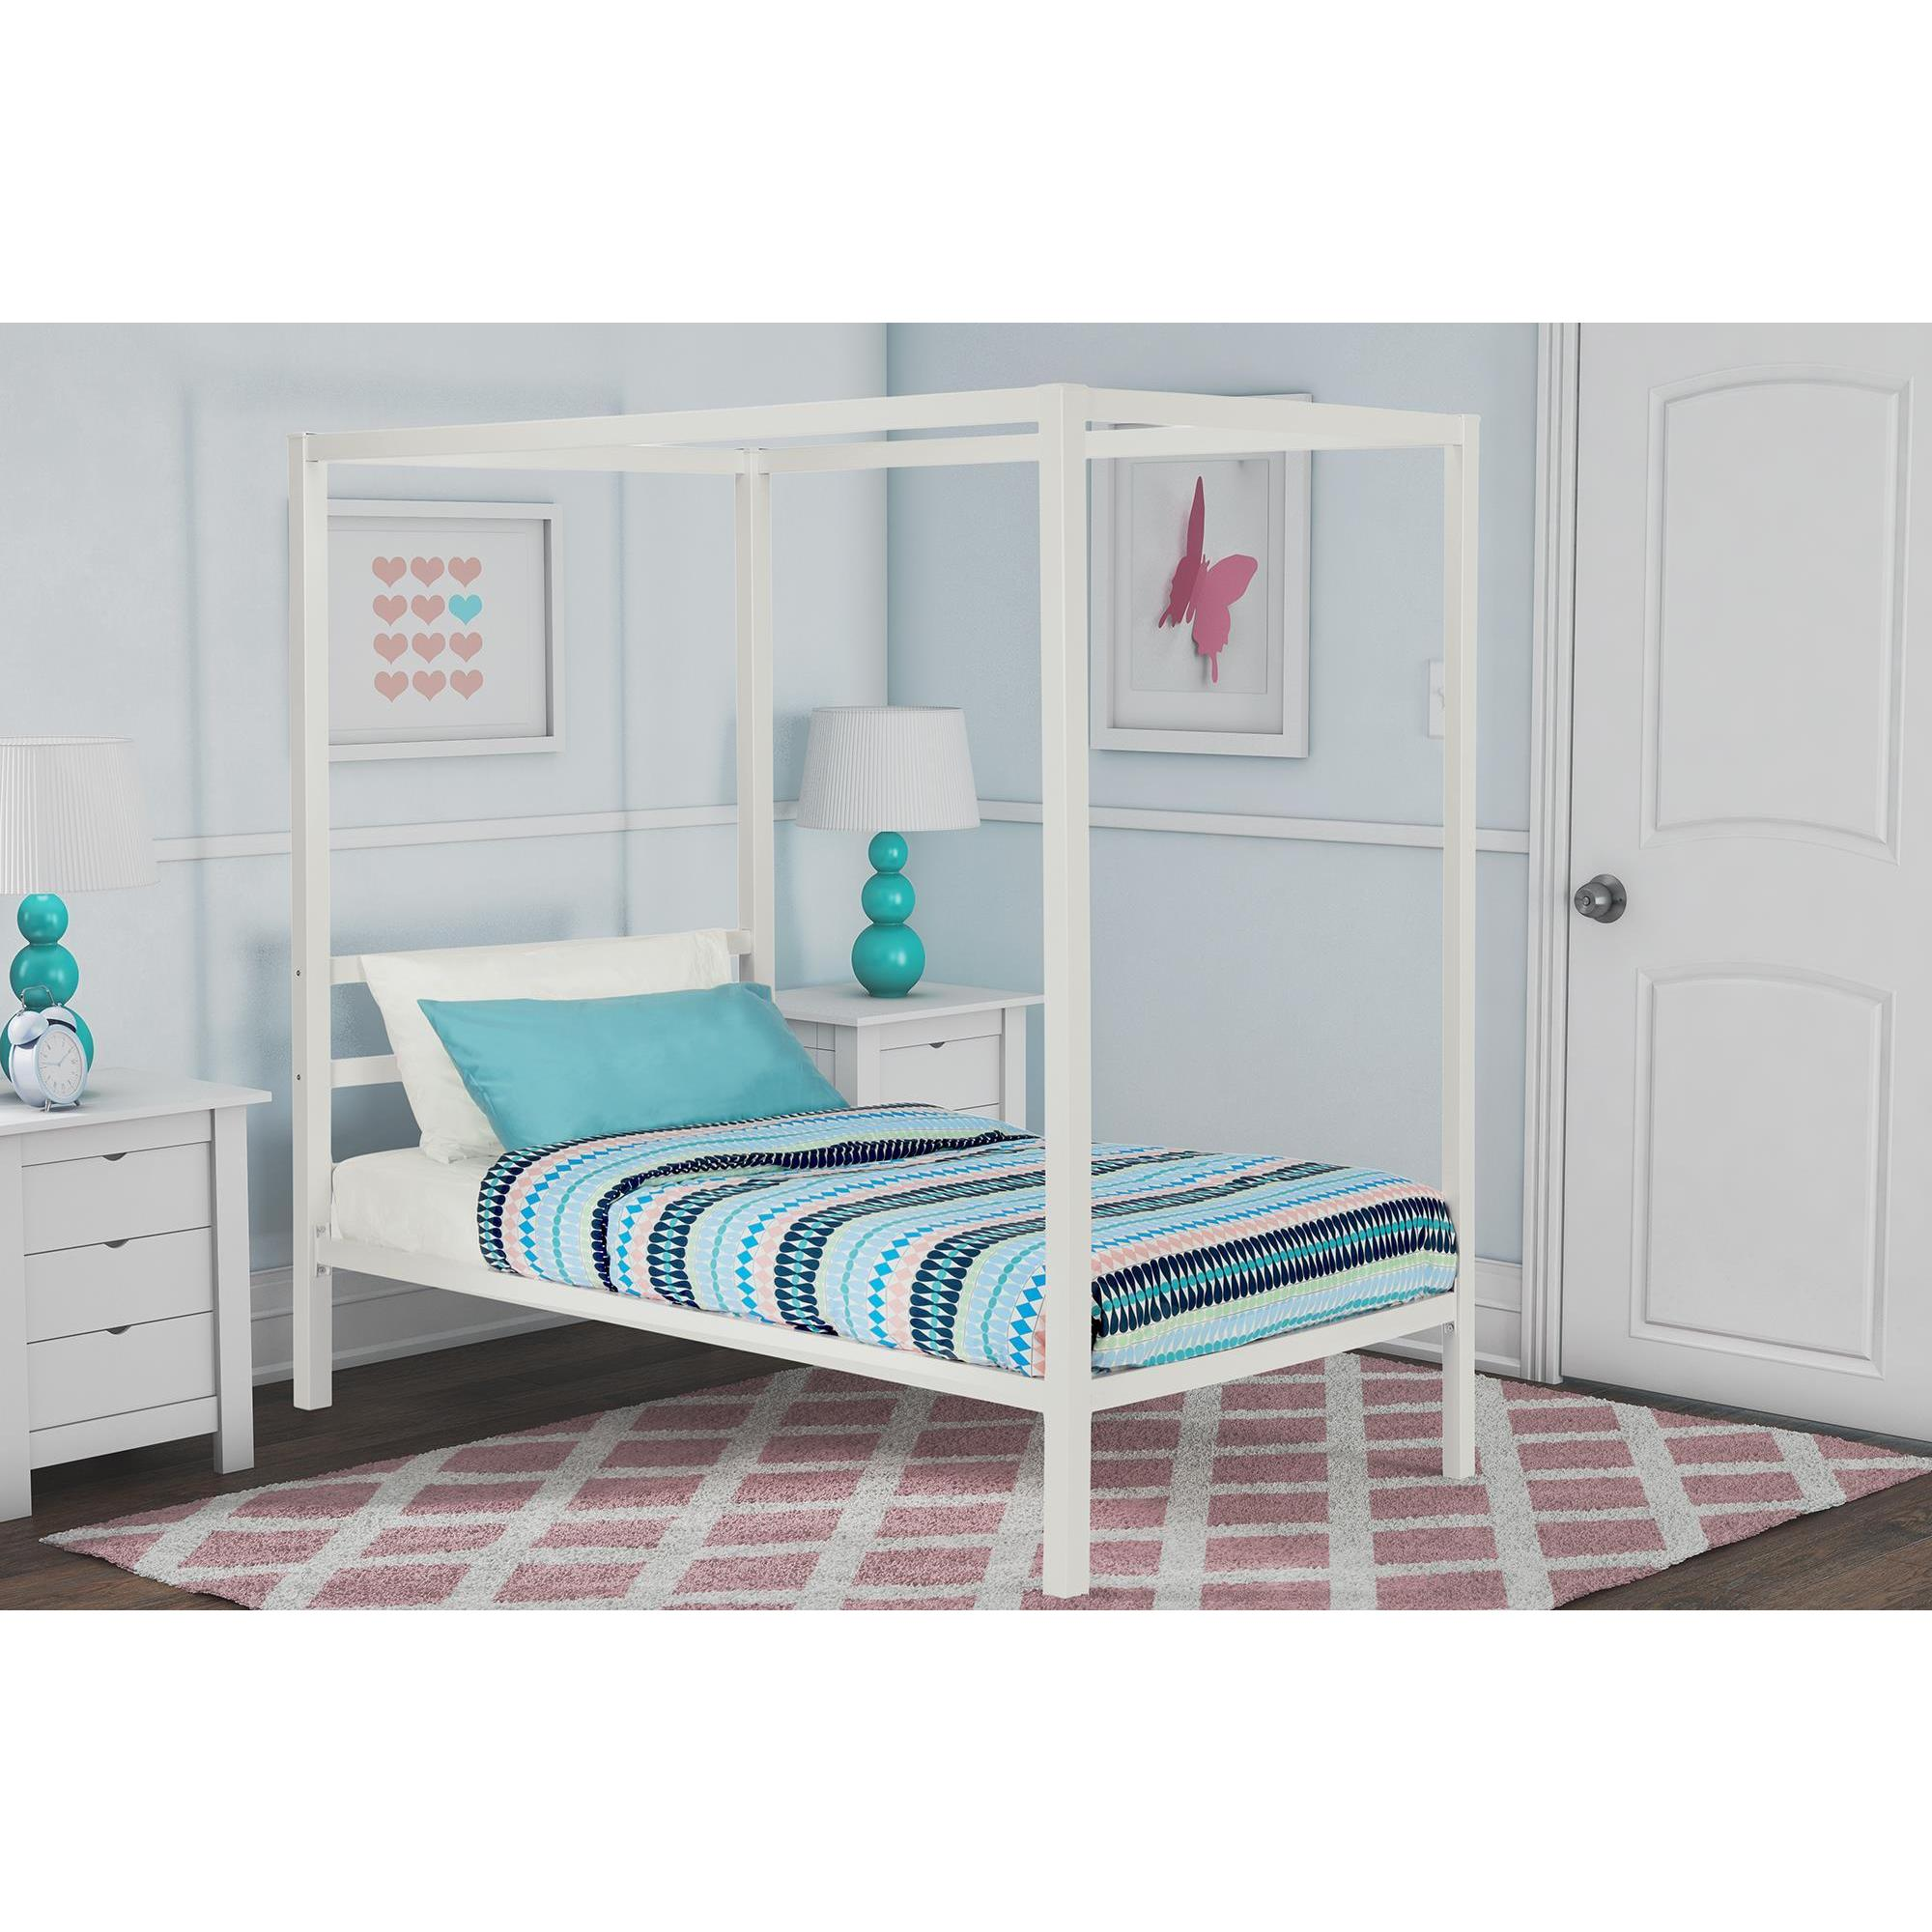 Kids Toddler Beds Online At Our Best Furniture Deals